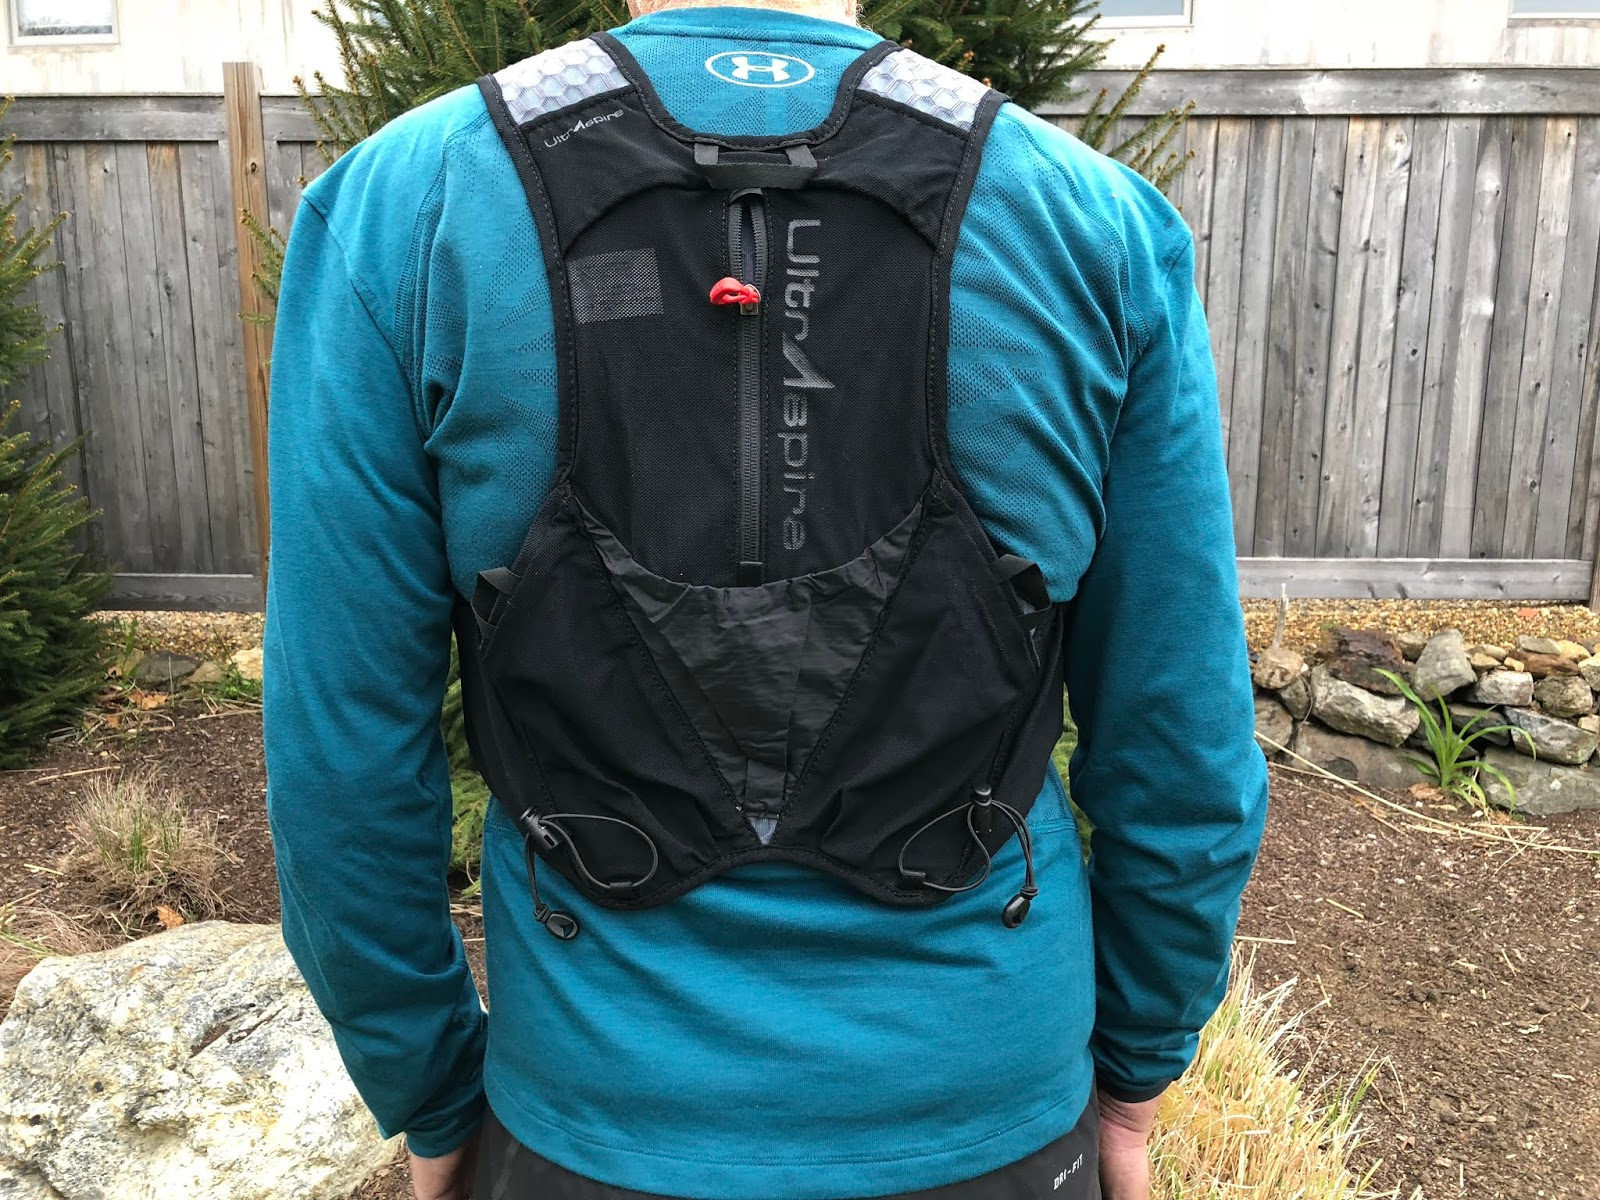 e08a5e63c6 The vest is constructed almost entirely of a very large holed 3D mesh with  the exception of its mesh pockets and small piece of ripstop towards the  bottom ...